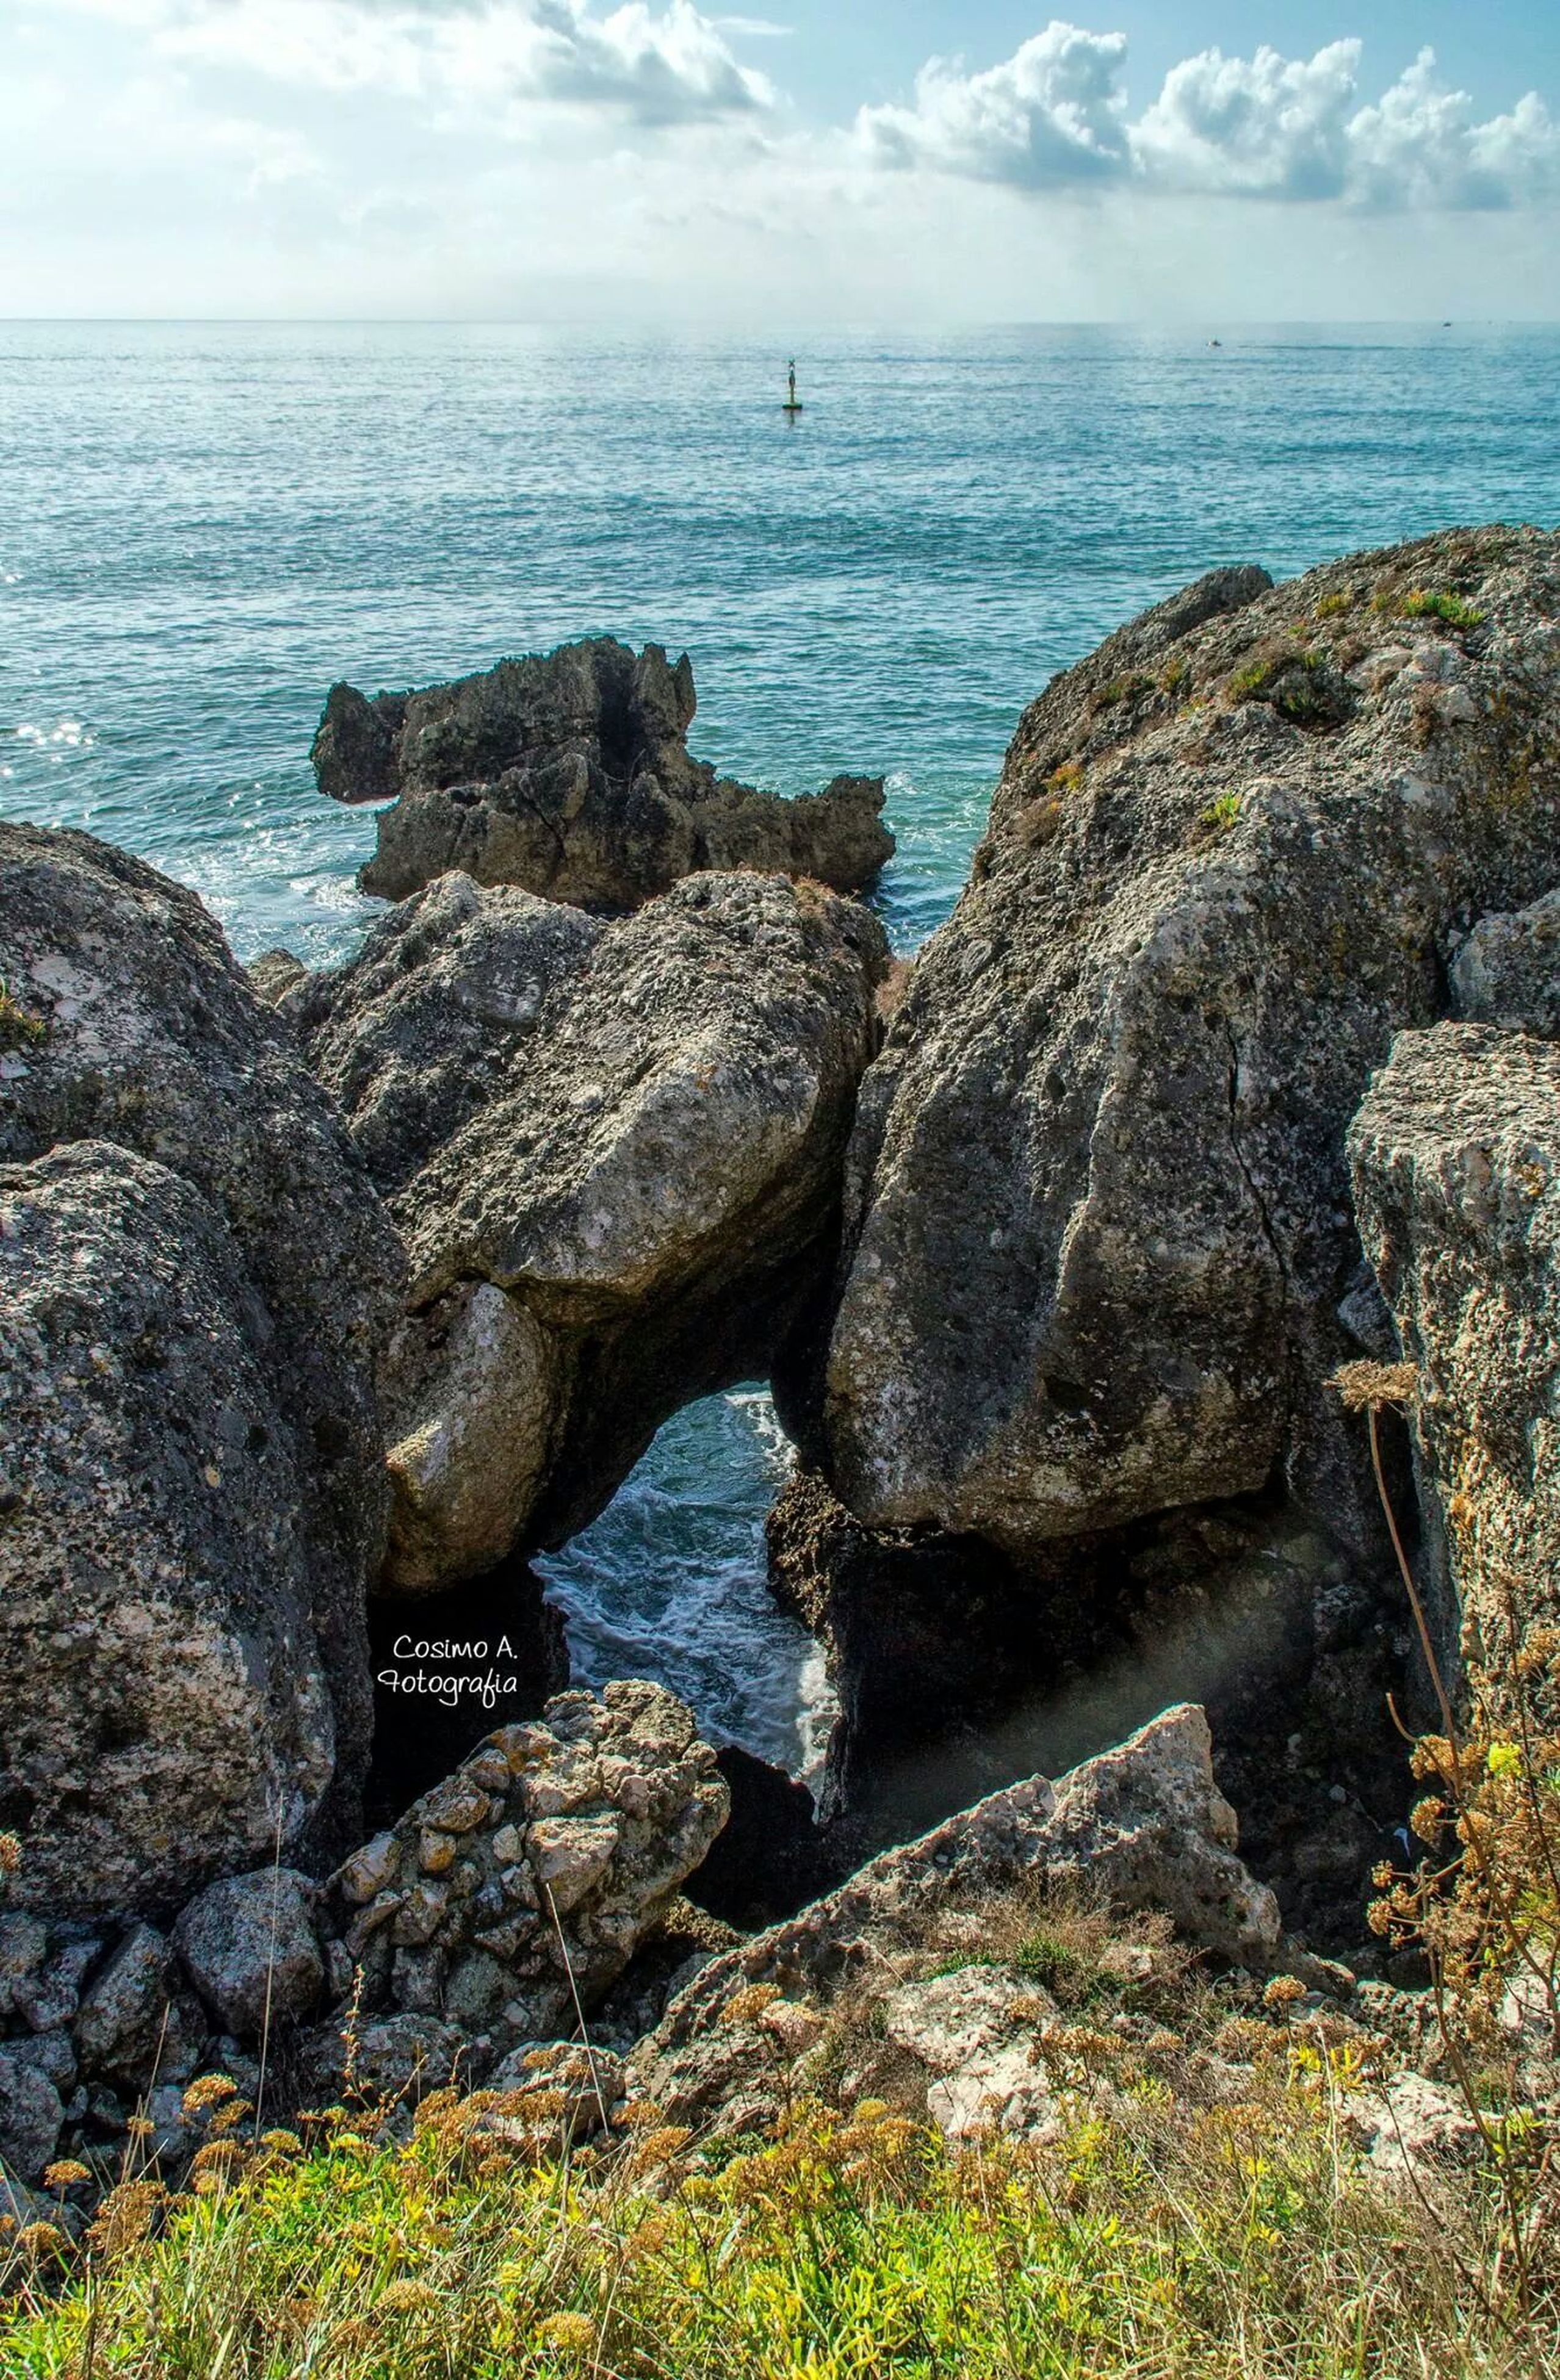 sea, water, horizon over water, tranquility, tranquil scene, scenics, sky, rock - object, beauty in nature, nature, rock formation, rock, shore, beach, idyllic, coastline, cliff, blue, high angle view, grass